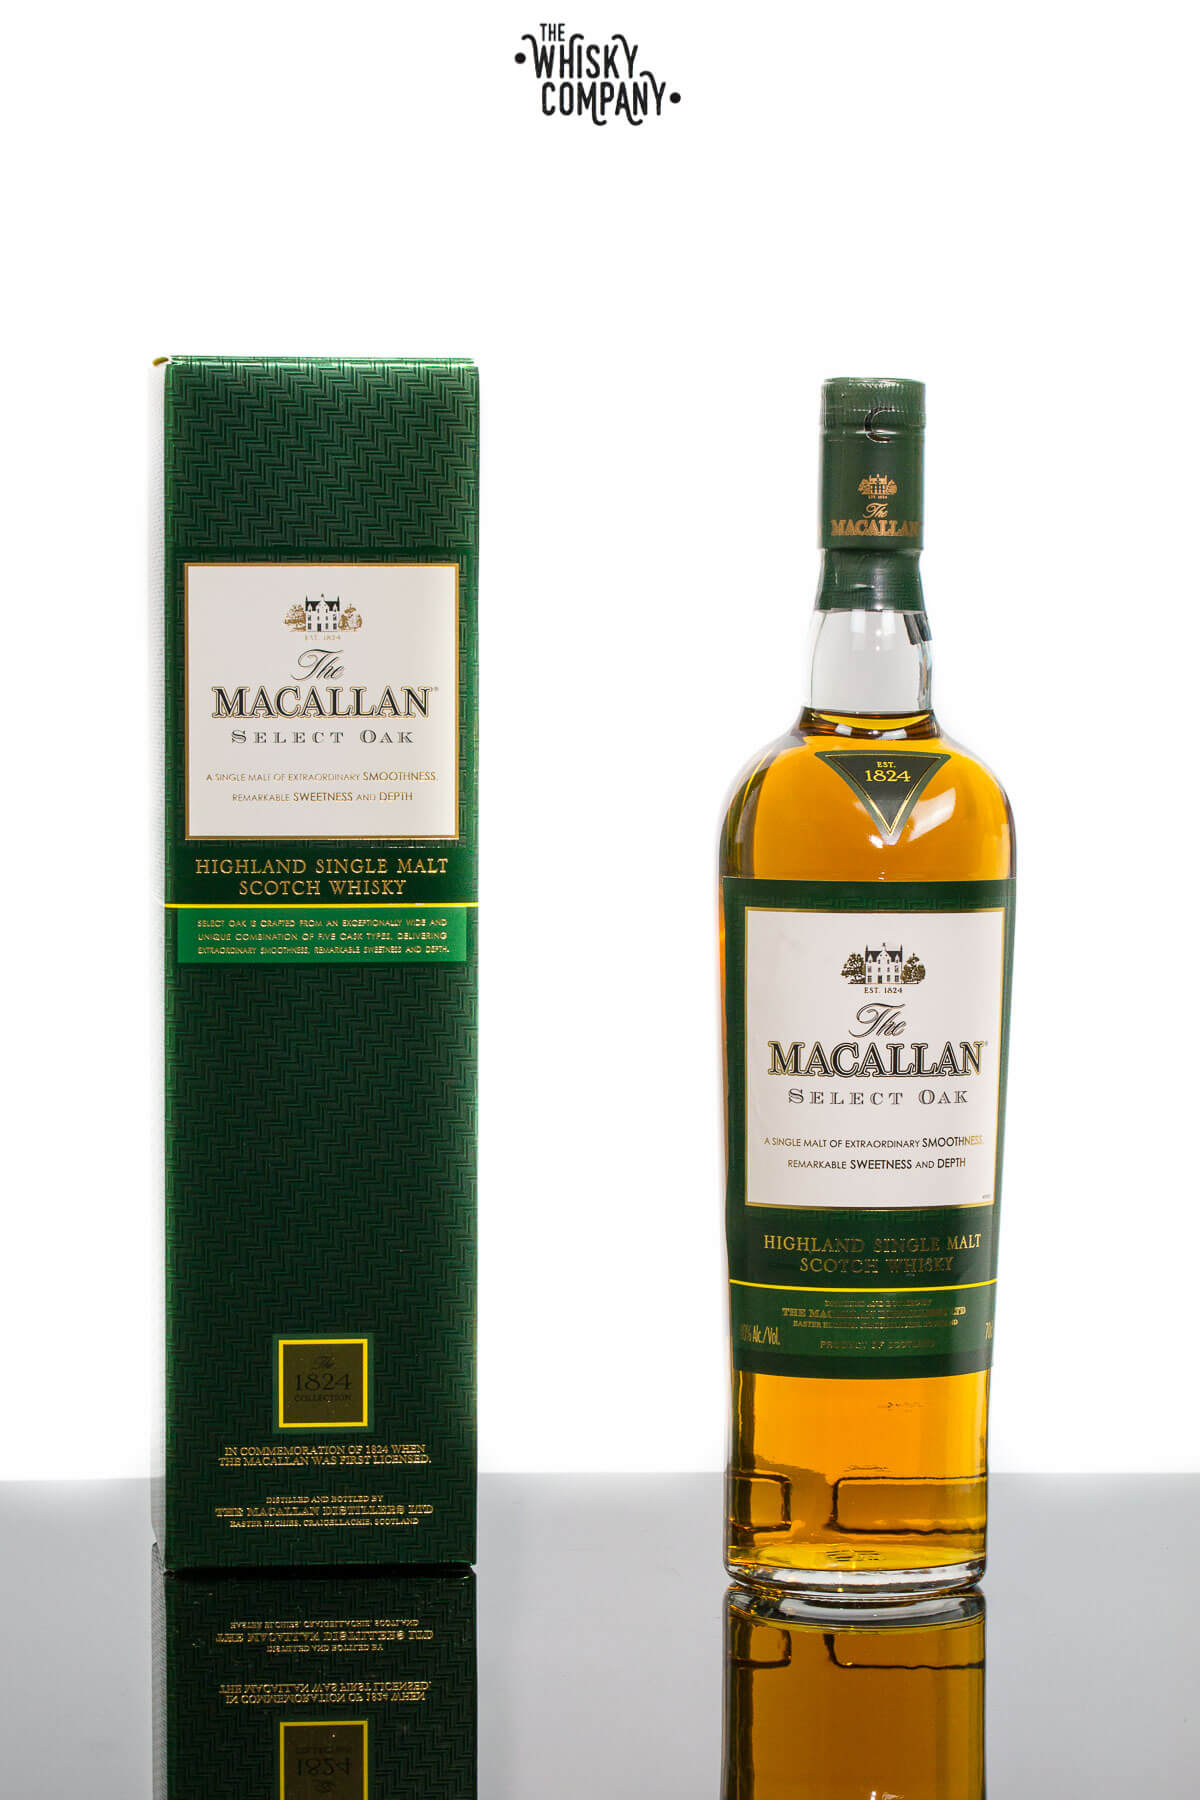 The Macallan Select Oak Highland Single Malt Scotch Whisky